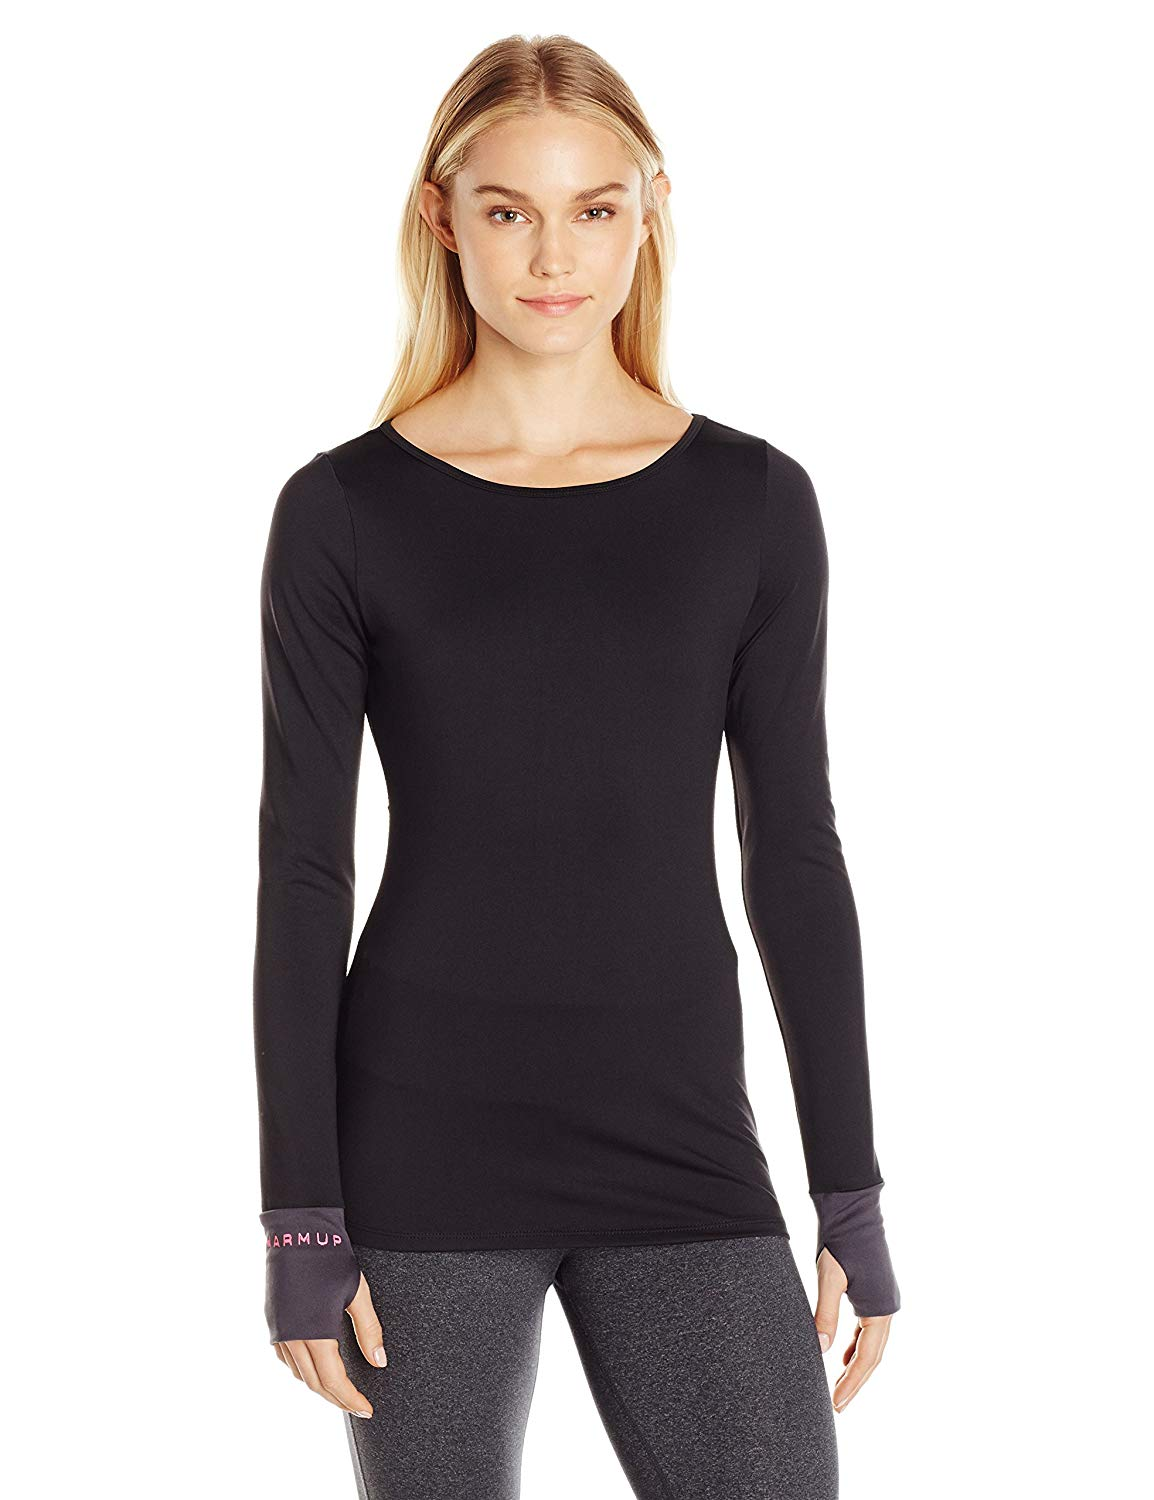 The Warm Up by Jessica Simpson Women's Jet Black Long Sleeve Compression Top with Cut Out Back